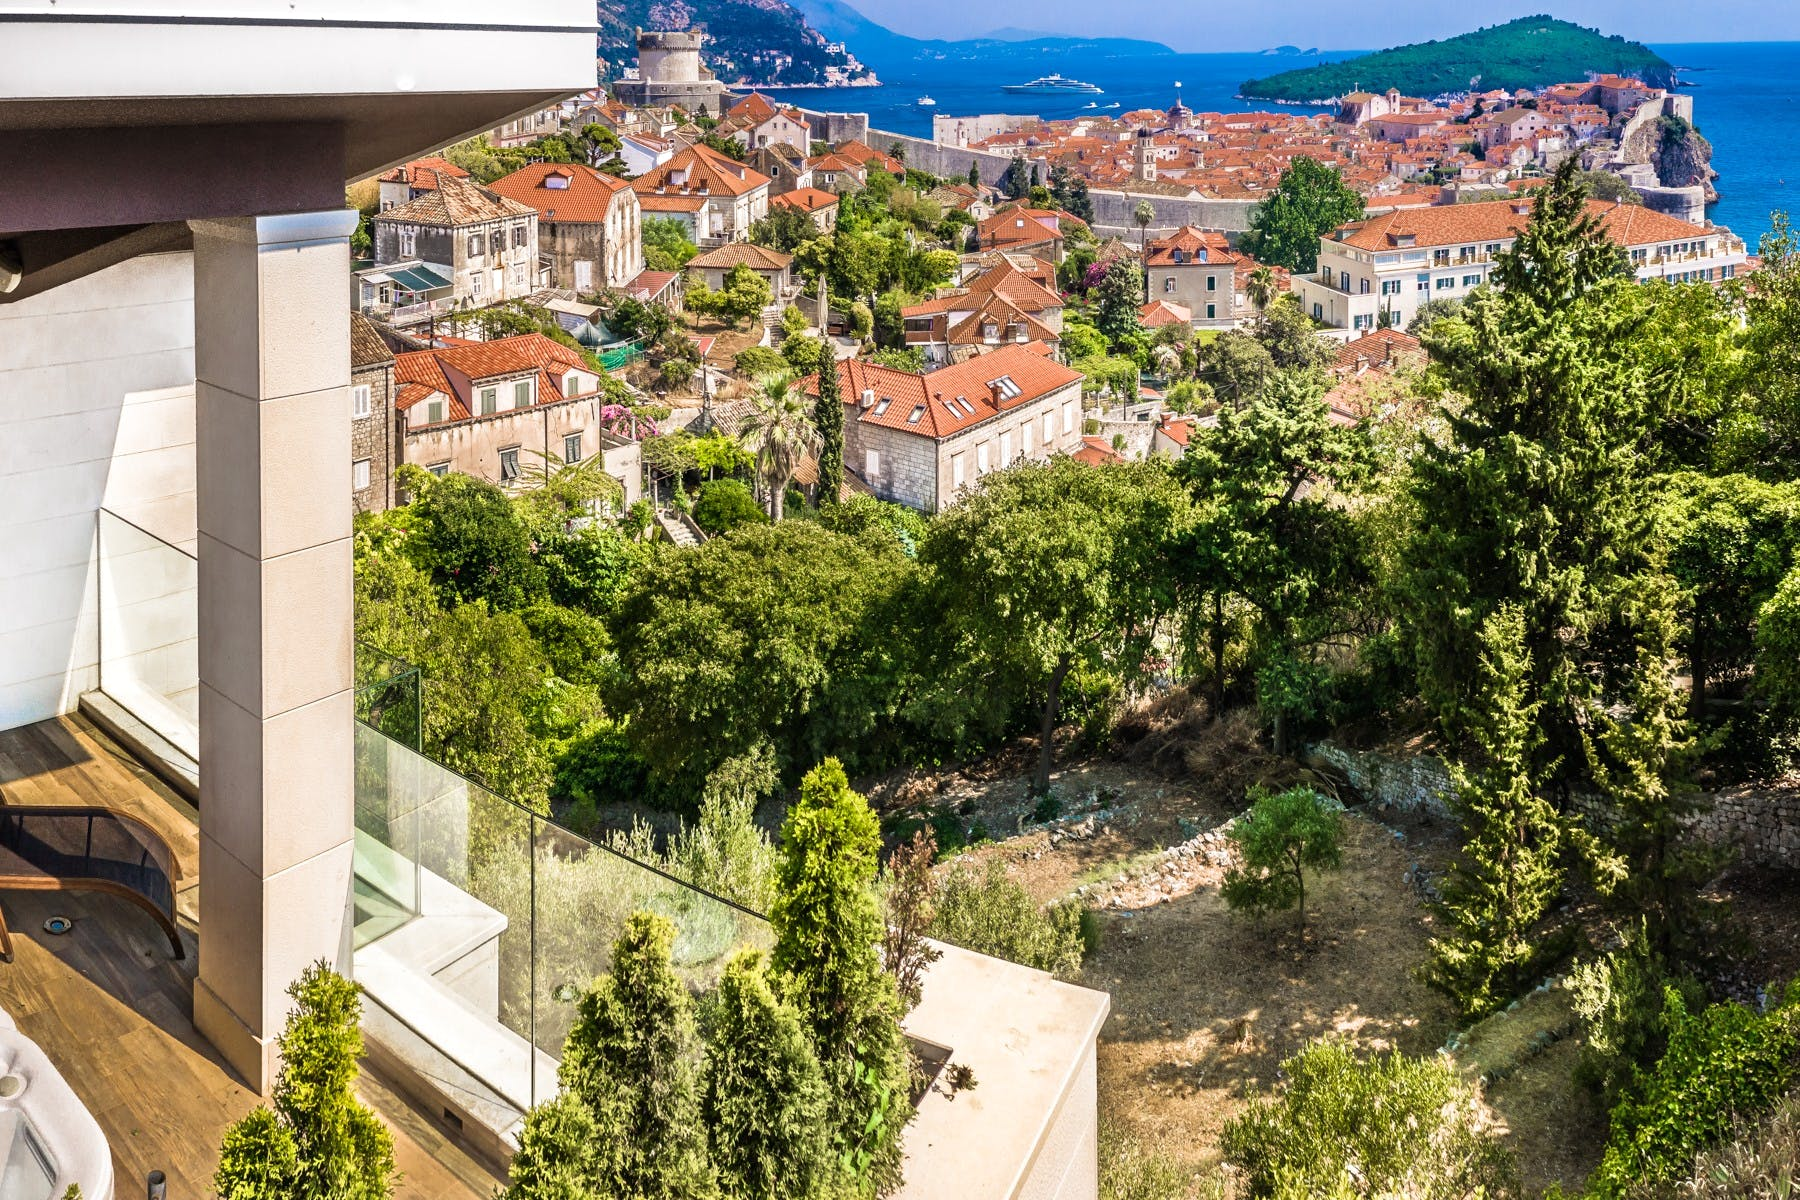 Exceptional sea view and the view of the Old Town and